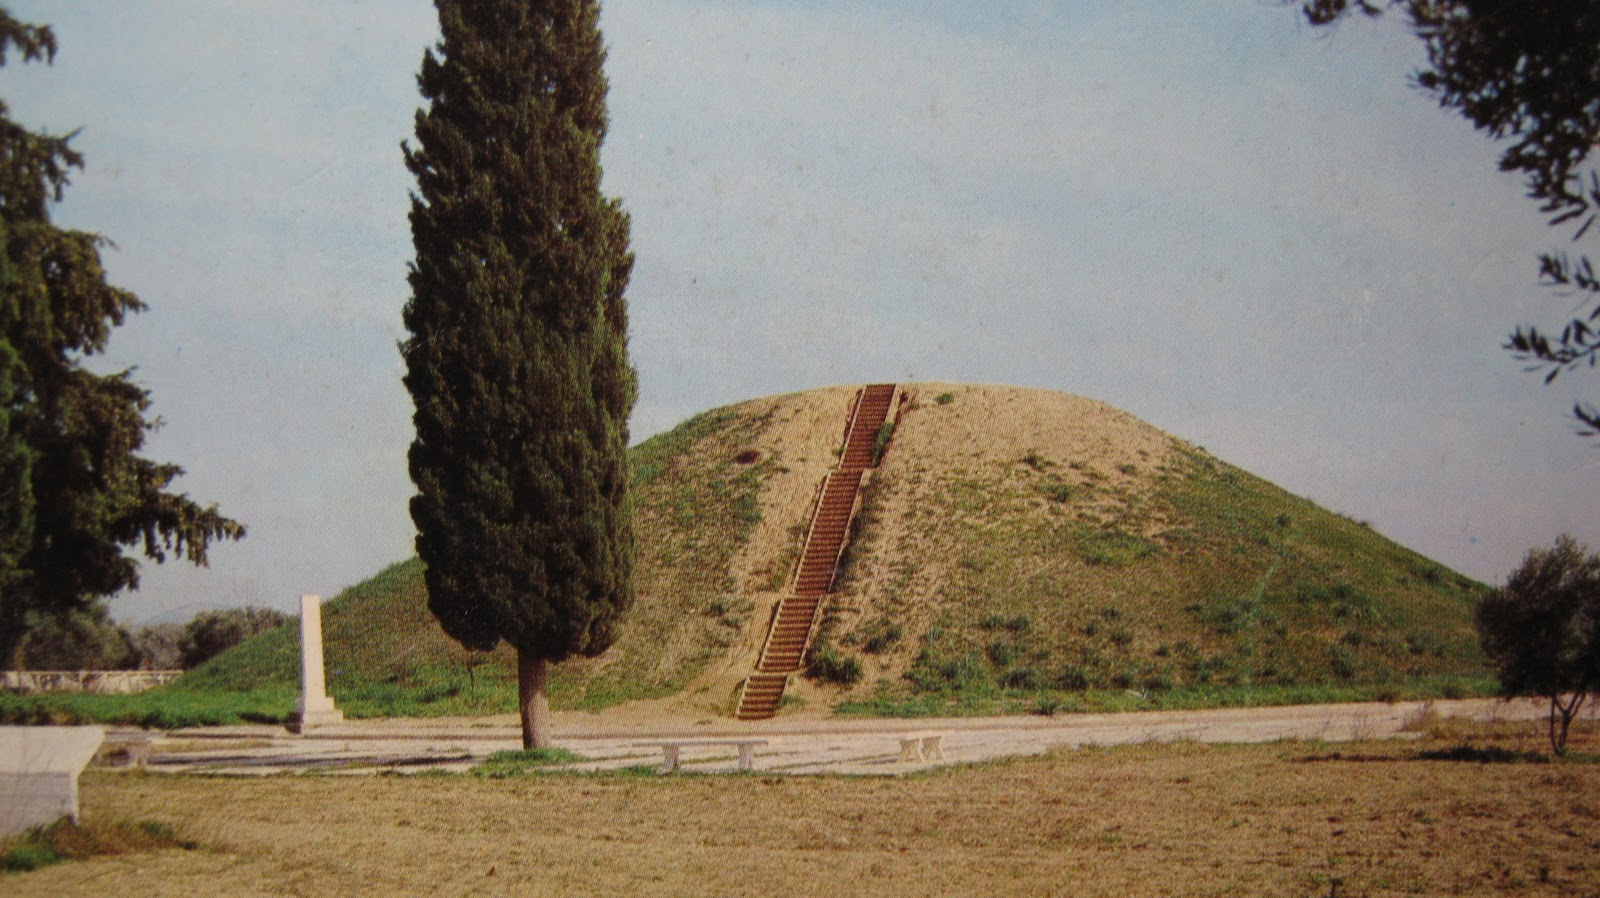 A large mound of earth in a flat field: the burial mound for the Athenians who died at the Battle of Marathon